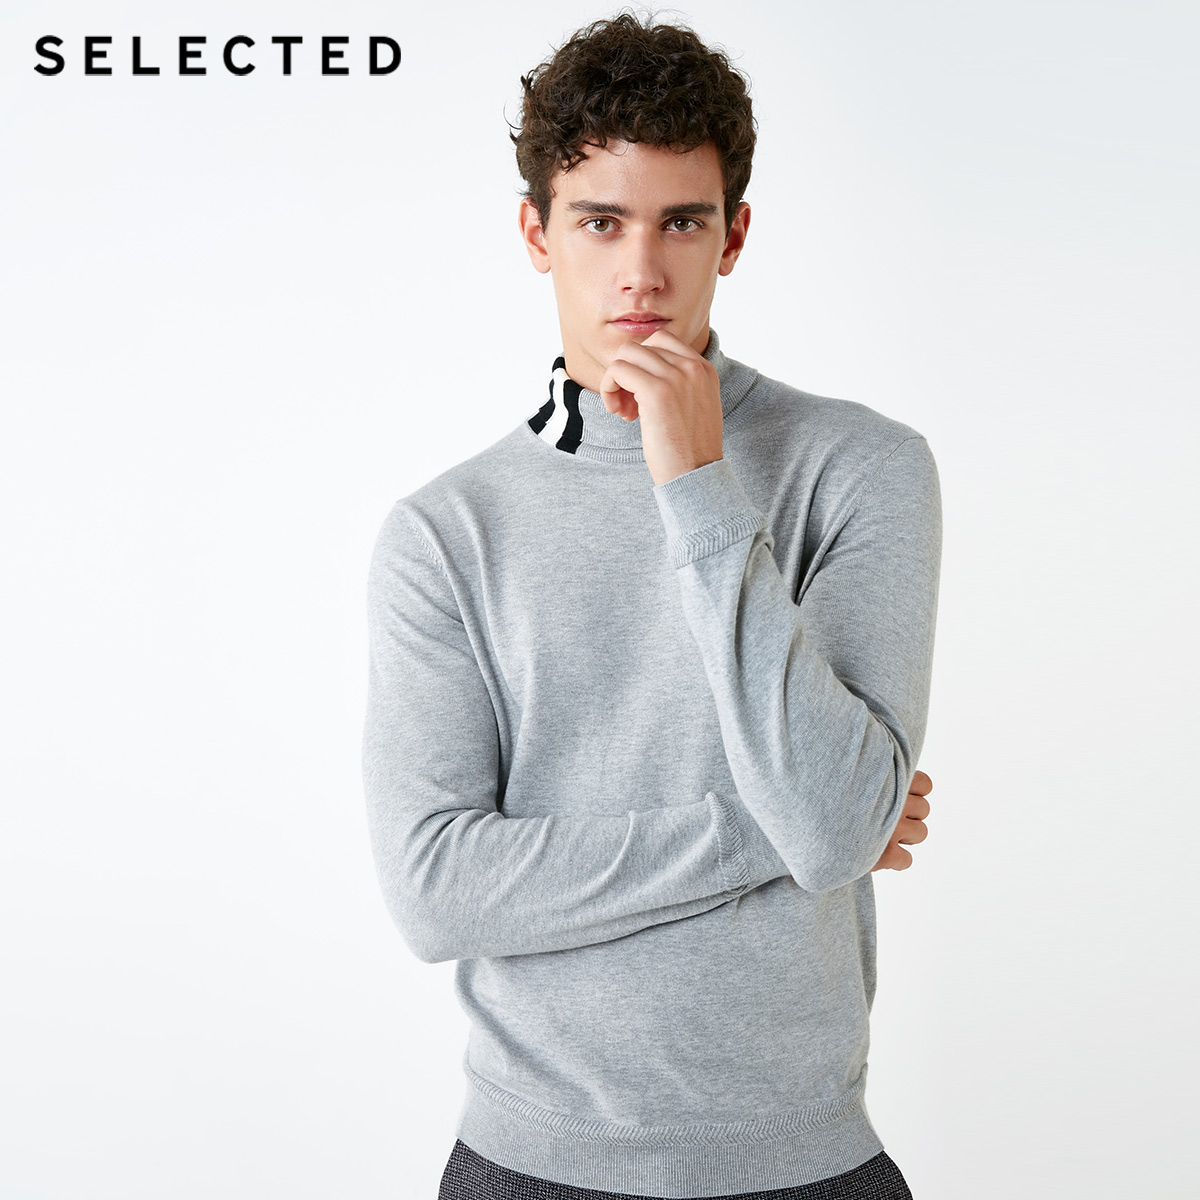 SELECTED Men's 100% Cotton Turtleneck Knitted Striped Splice Pullover High-necked Sweater Clothes S | 418424523